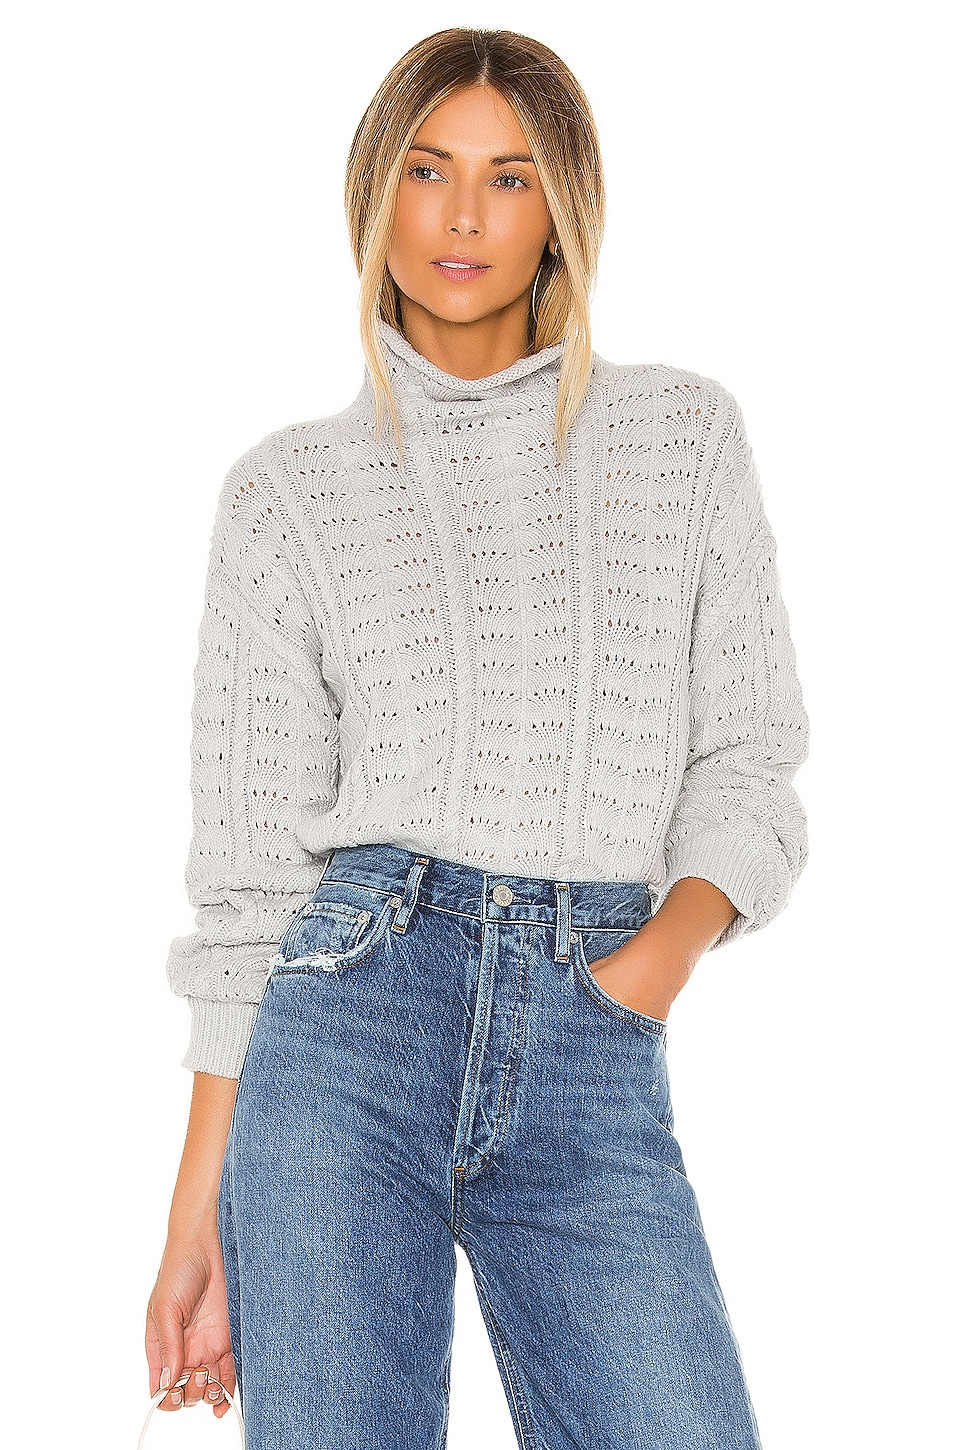 Lovers + Friends Libra Sweater in Heather Grey